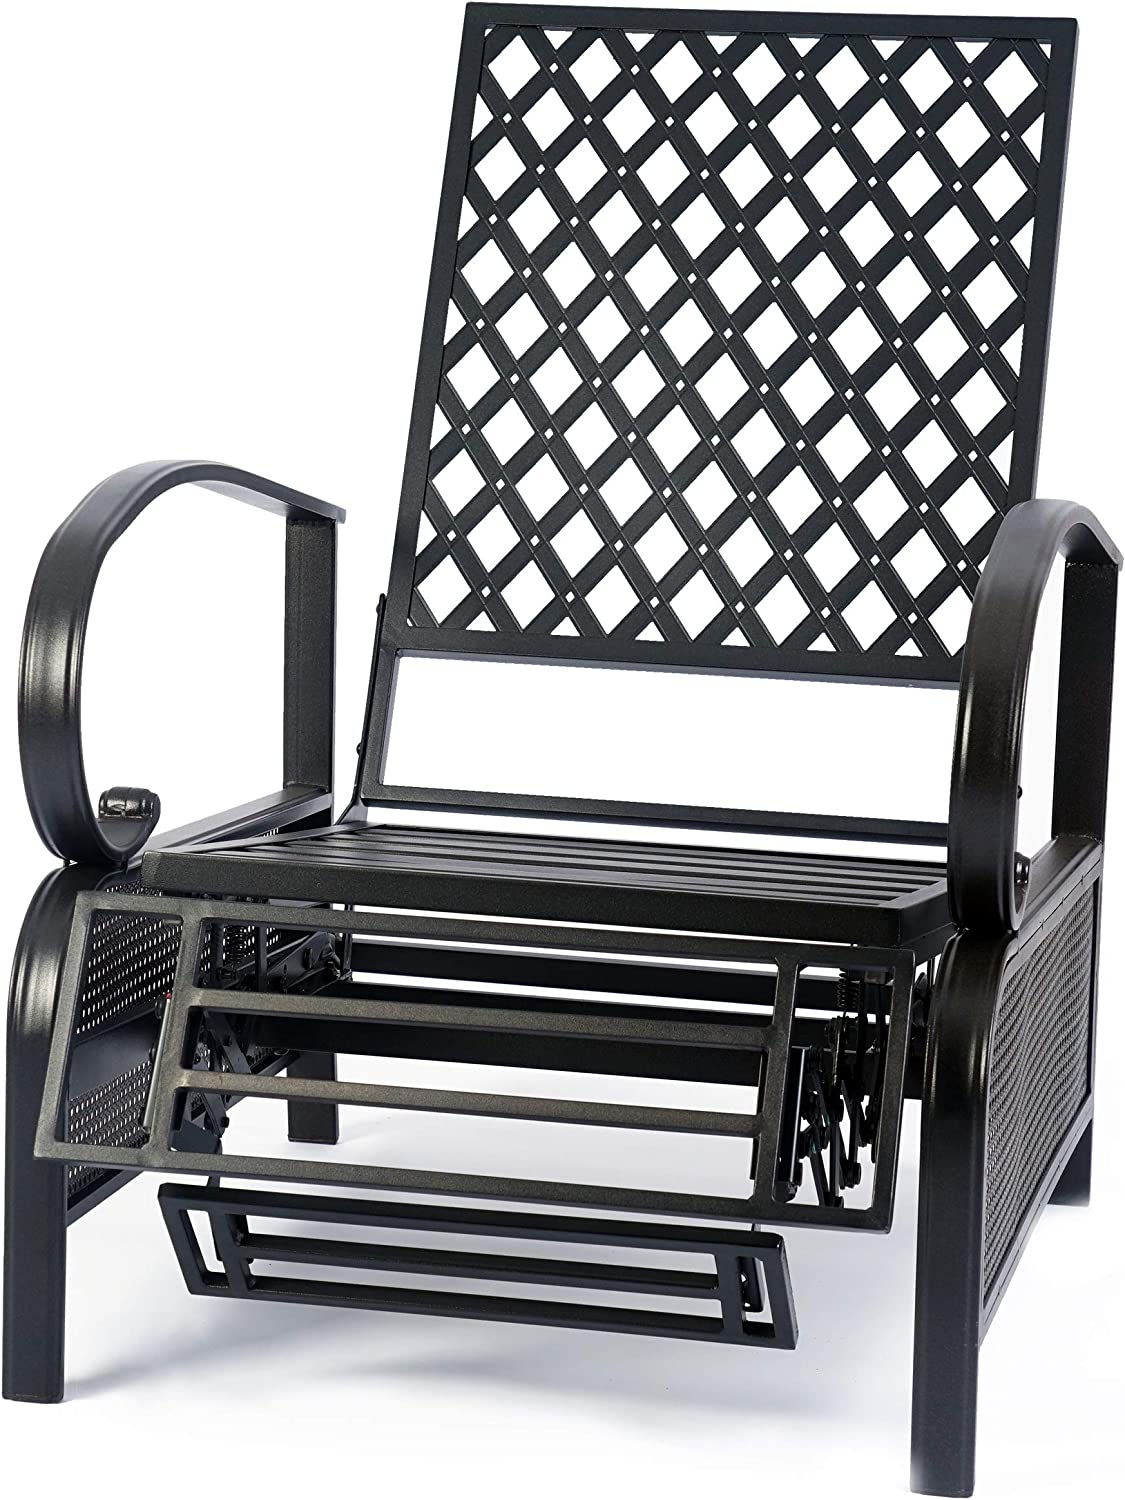 Sunbathing or Relaxation Tan Kozyard Adjustable Patio Reclining Lounge Chair with Strong Extendable Metal Frame and Removable Cushions for Outdoor Reading